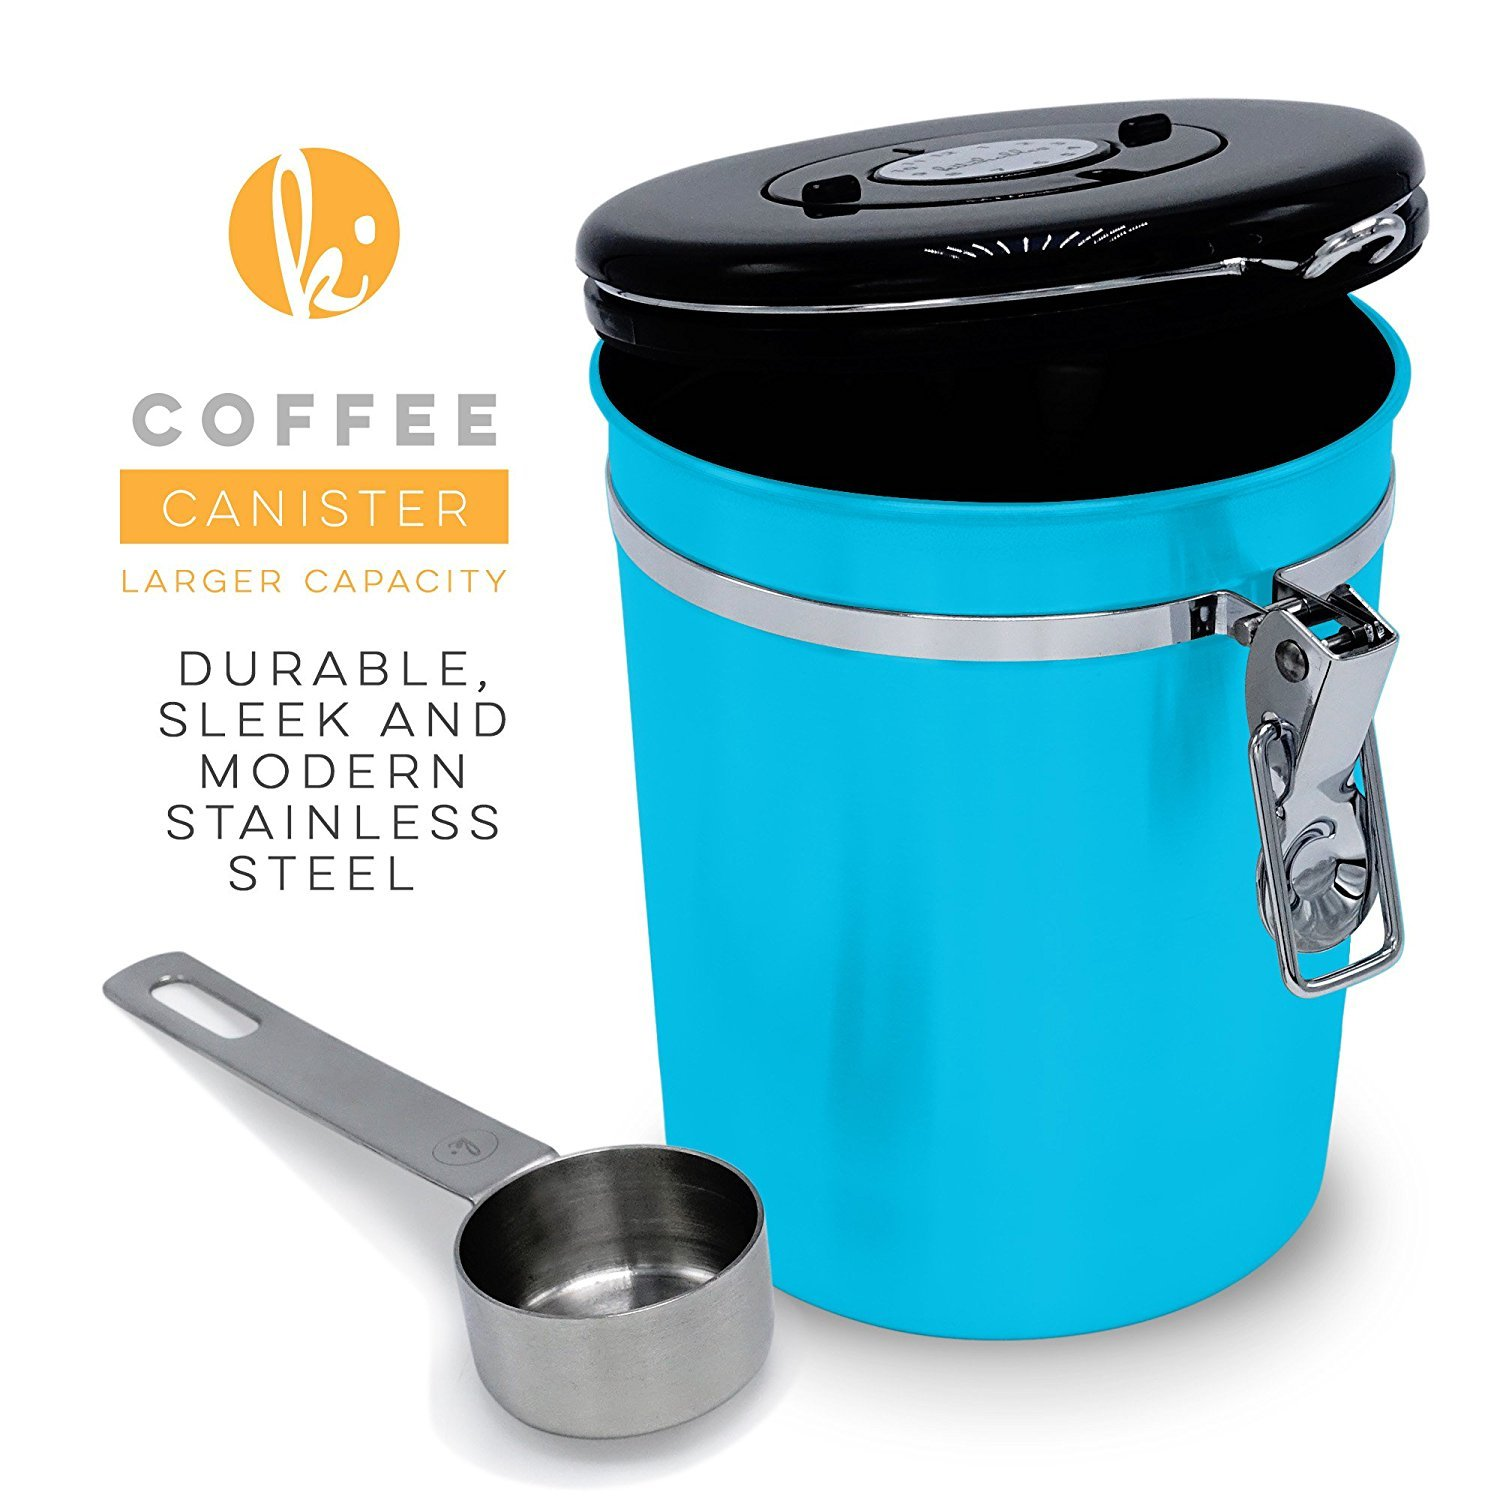 Amazon.com: Coffee Canister (Large) Airtight Seal Set with Scoop ...